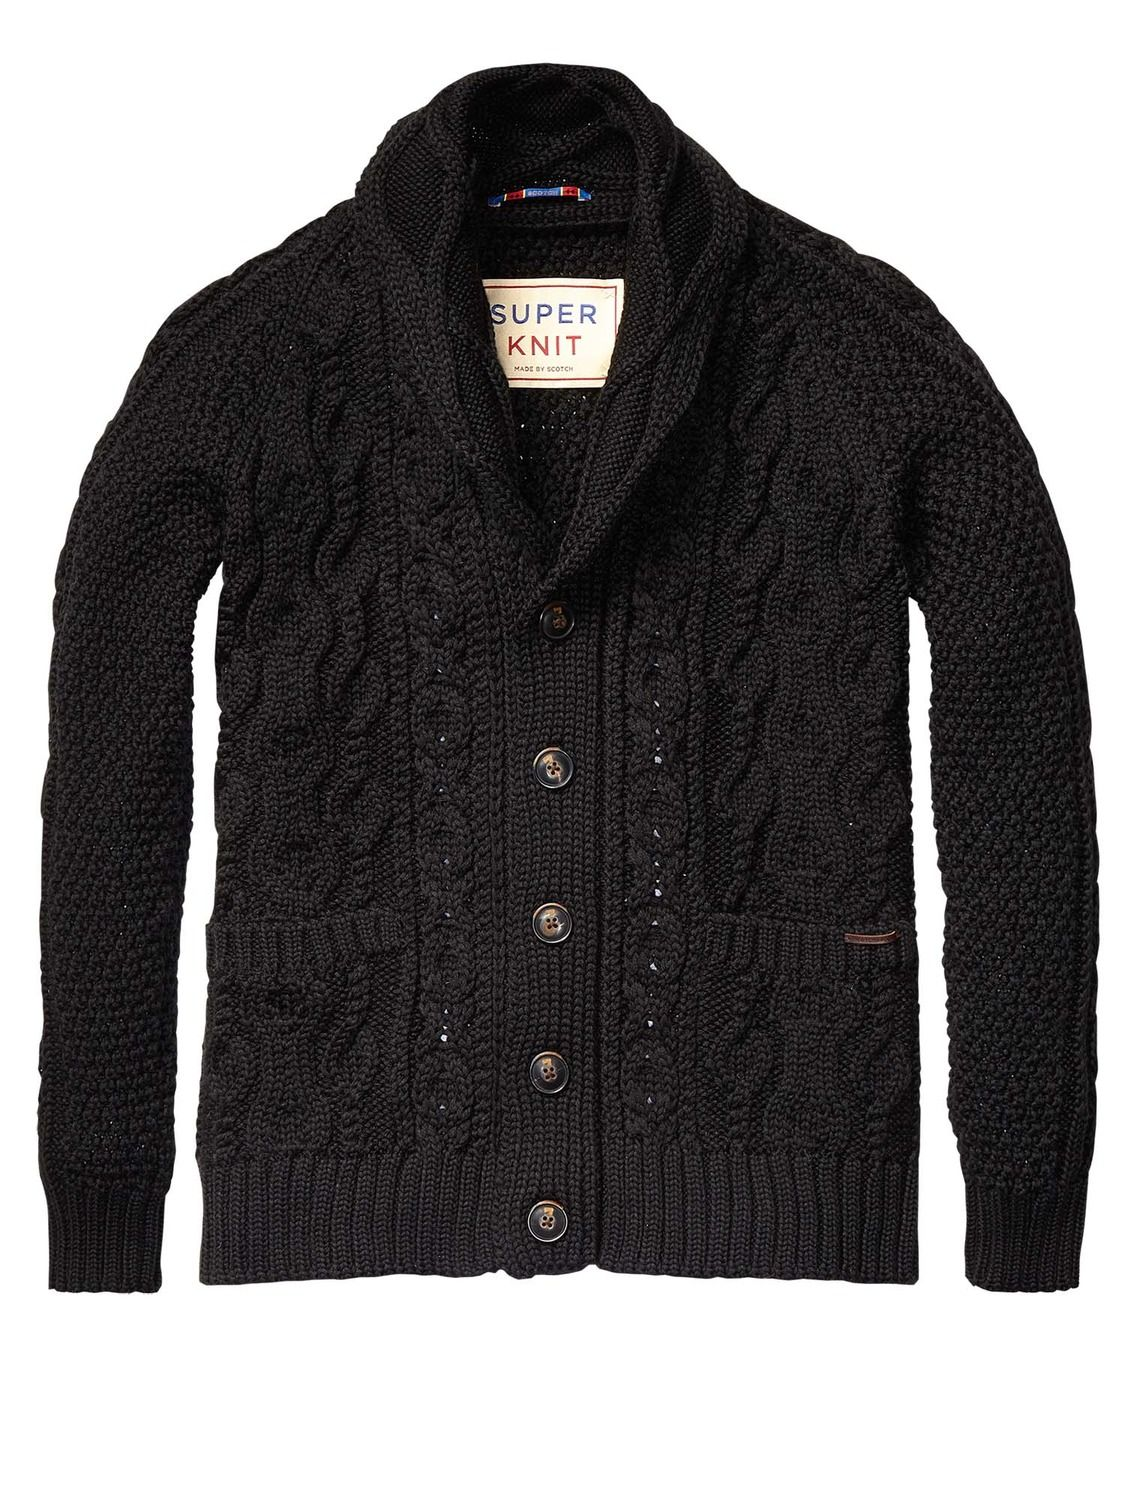 Heavy Cable Knitted Cardigan Mens Clothing Pullovers at Scotch ...